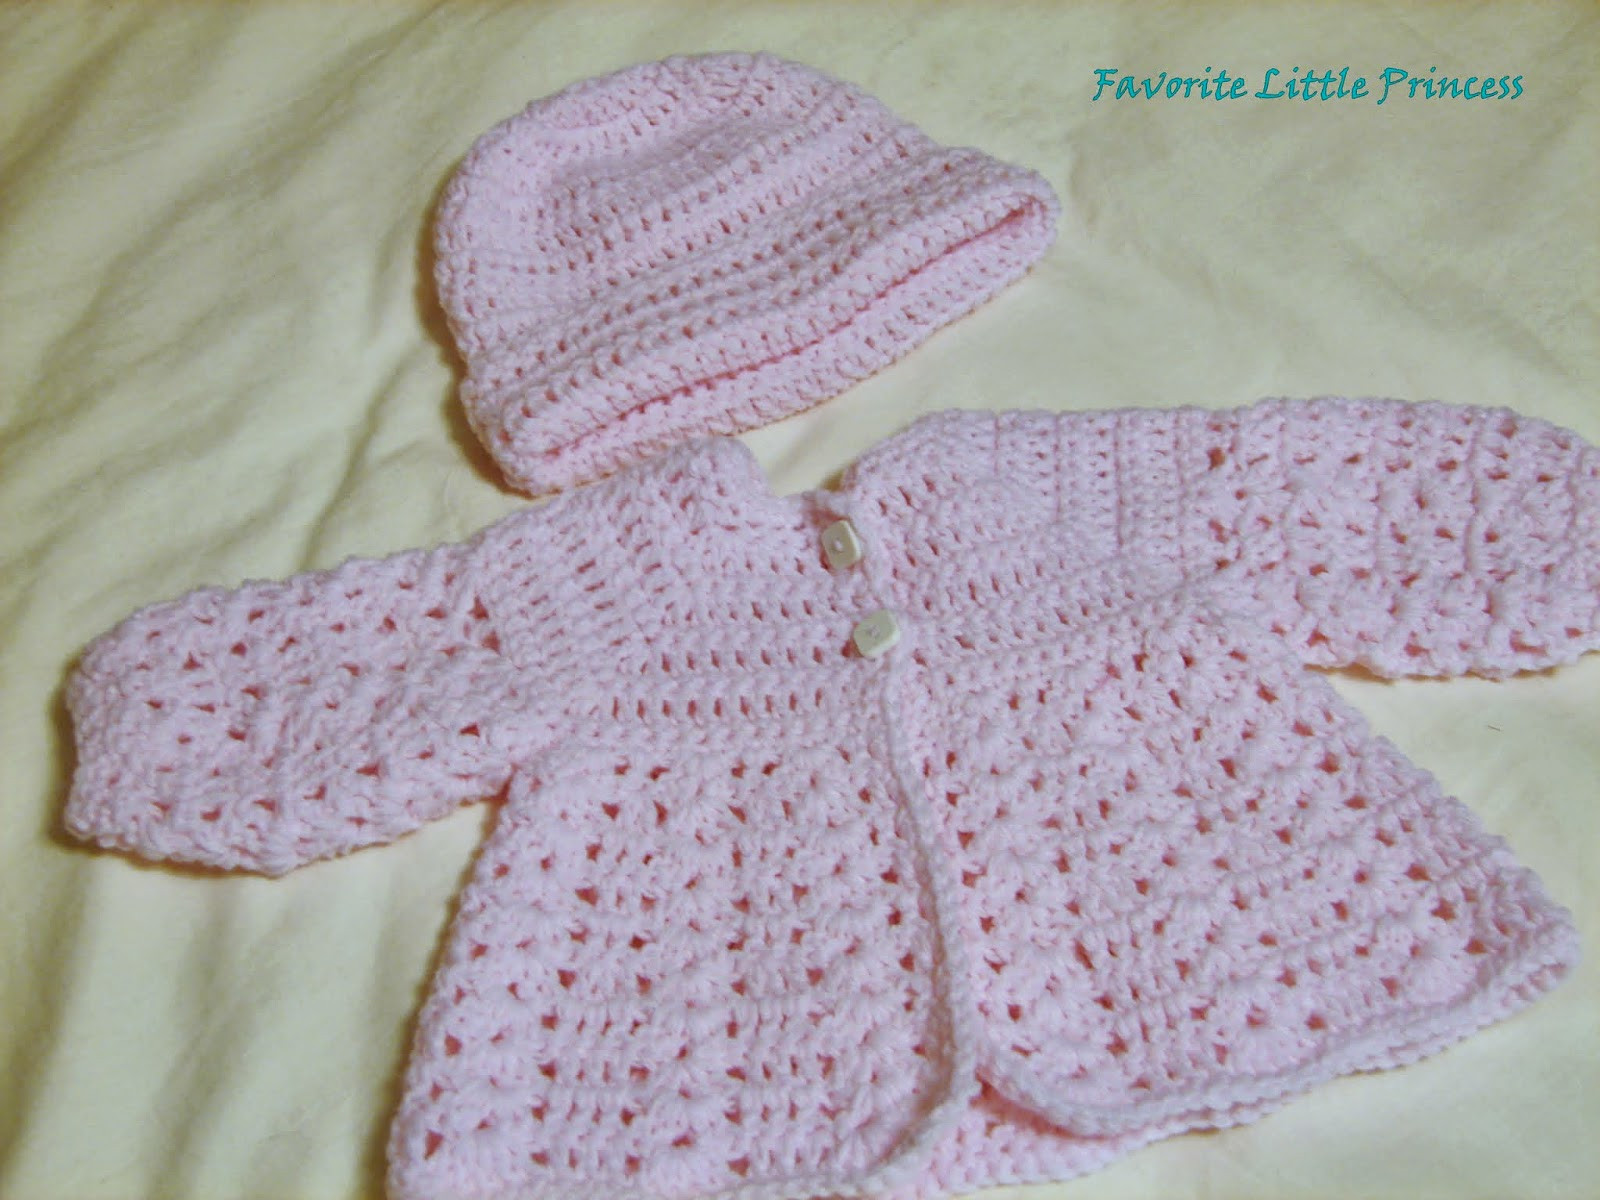 Baby Sweater Crochet Pattern Fresh Favorite Little Princess Easy Baby Sweater and Hat Of Amazing 40 Photos Baby Sweater Crochet Pattern